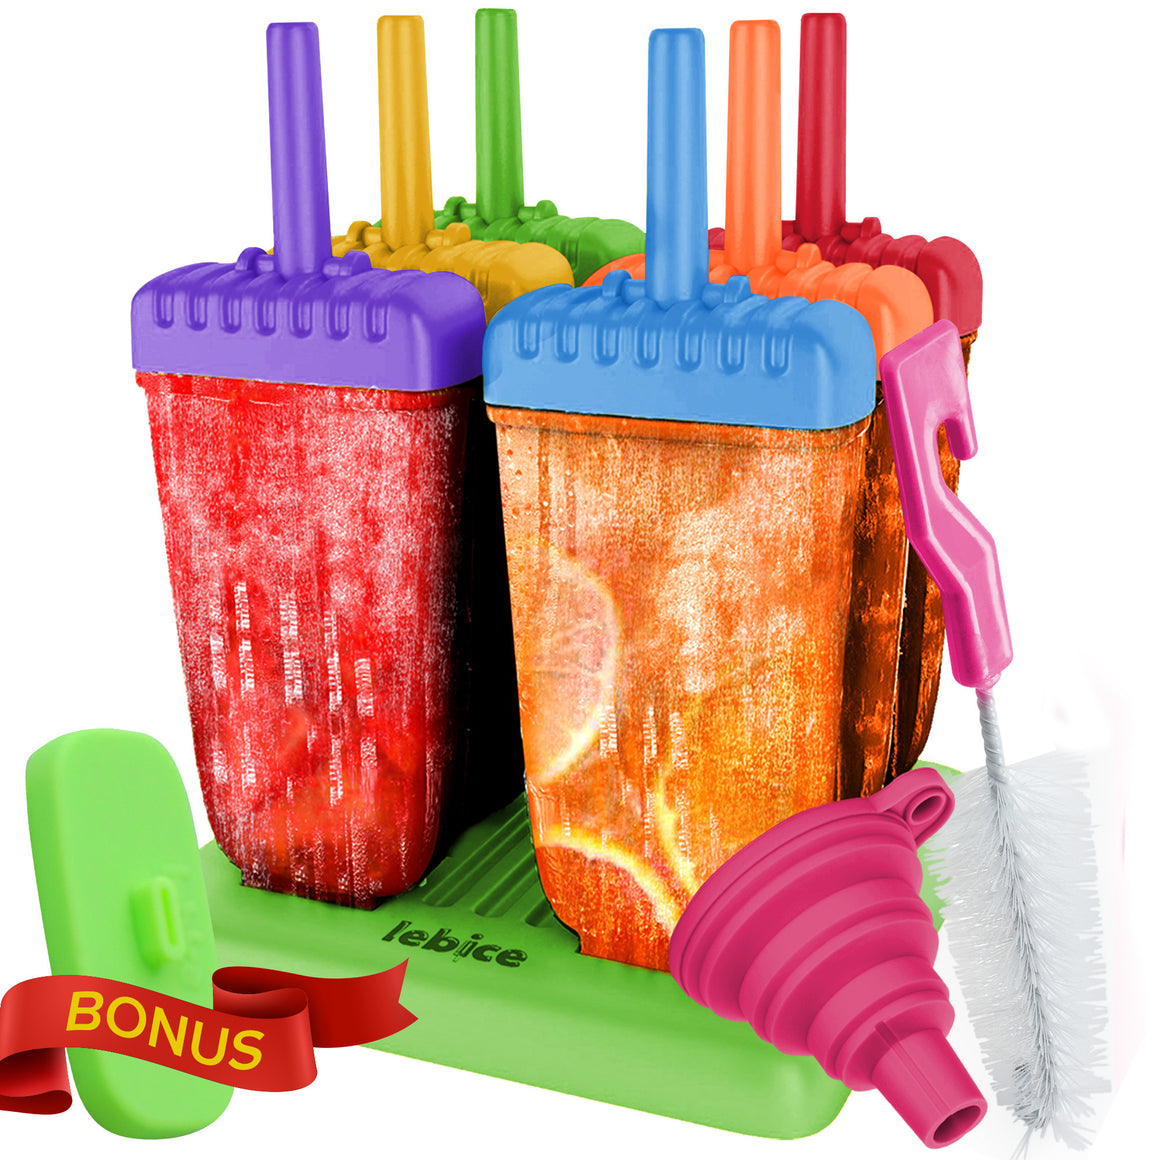 LEBICE Popsicle Molds Set (Mix colors)